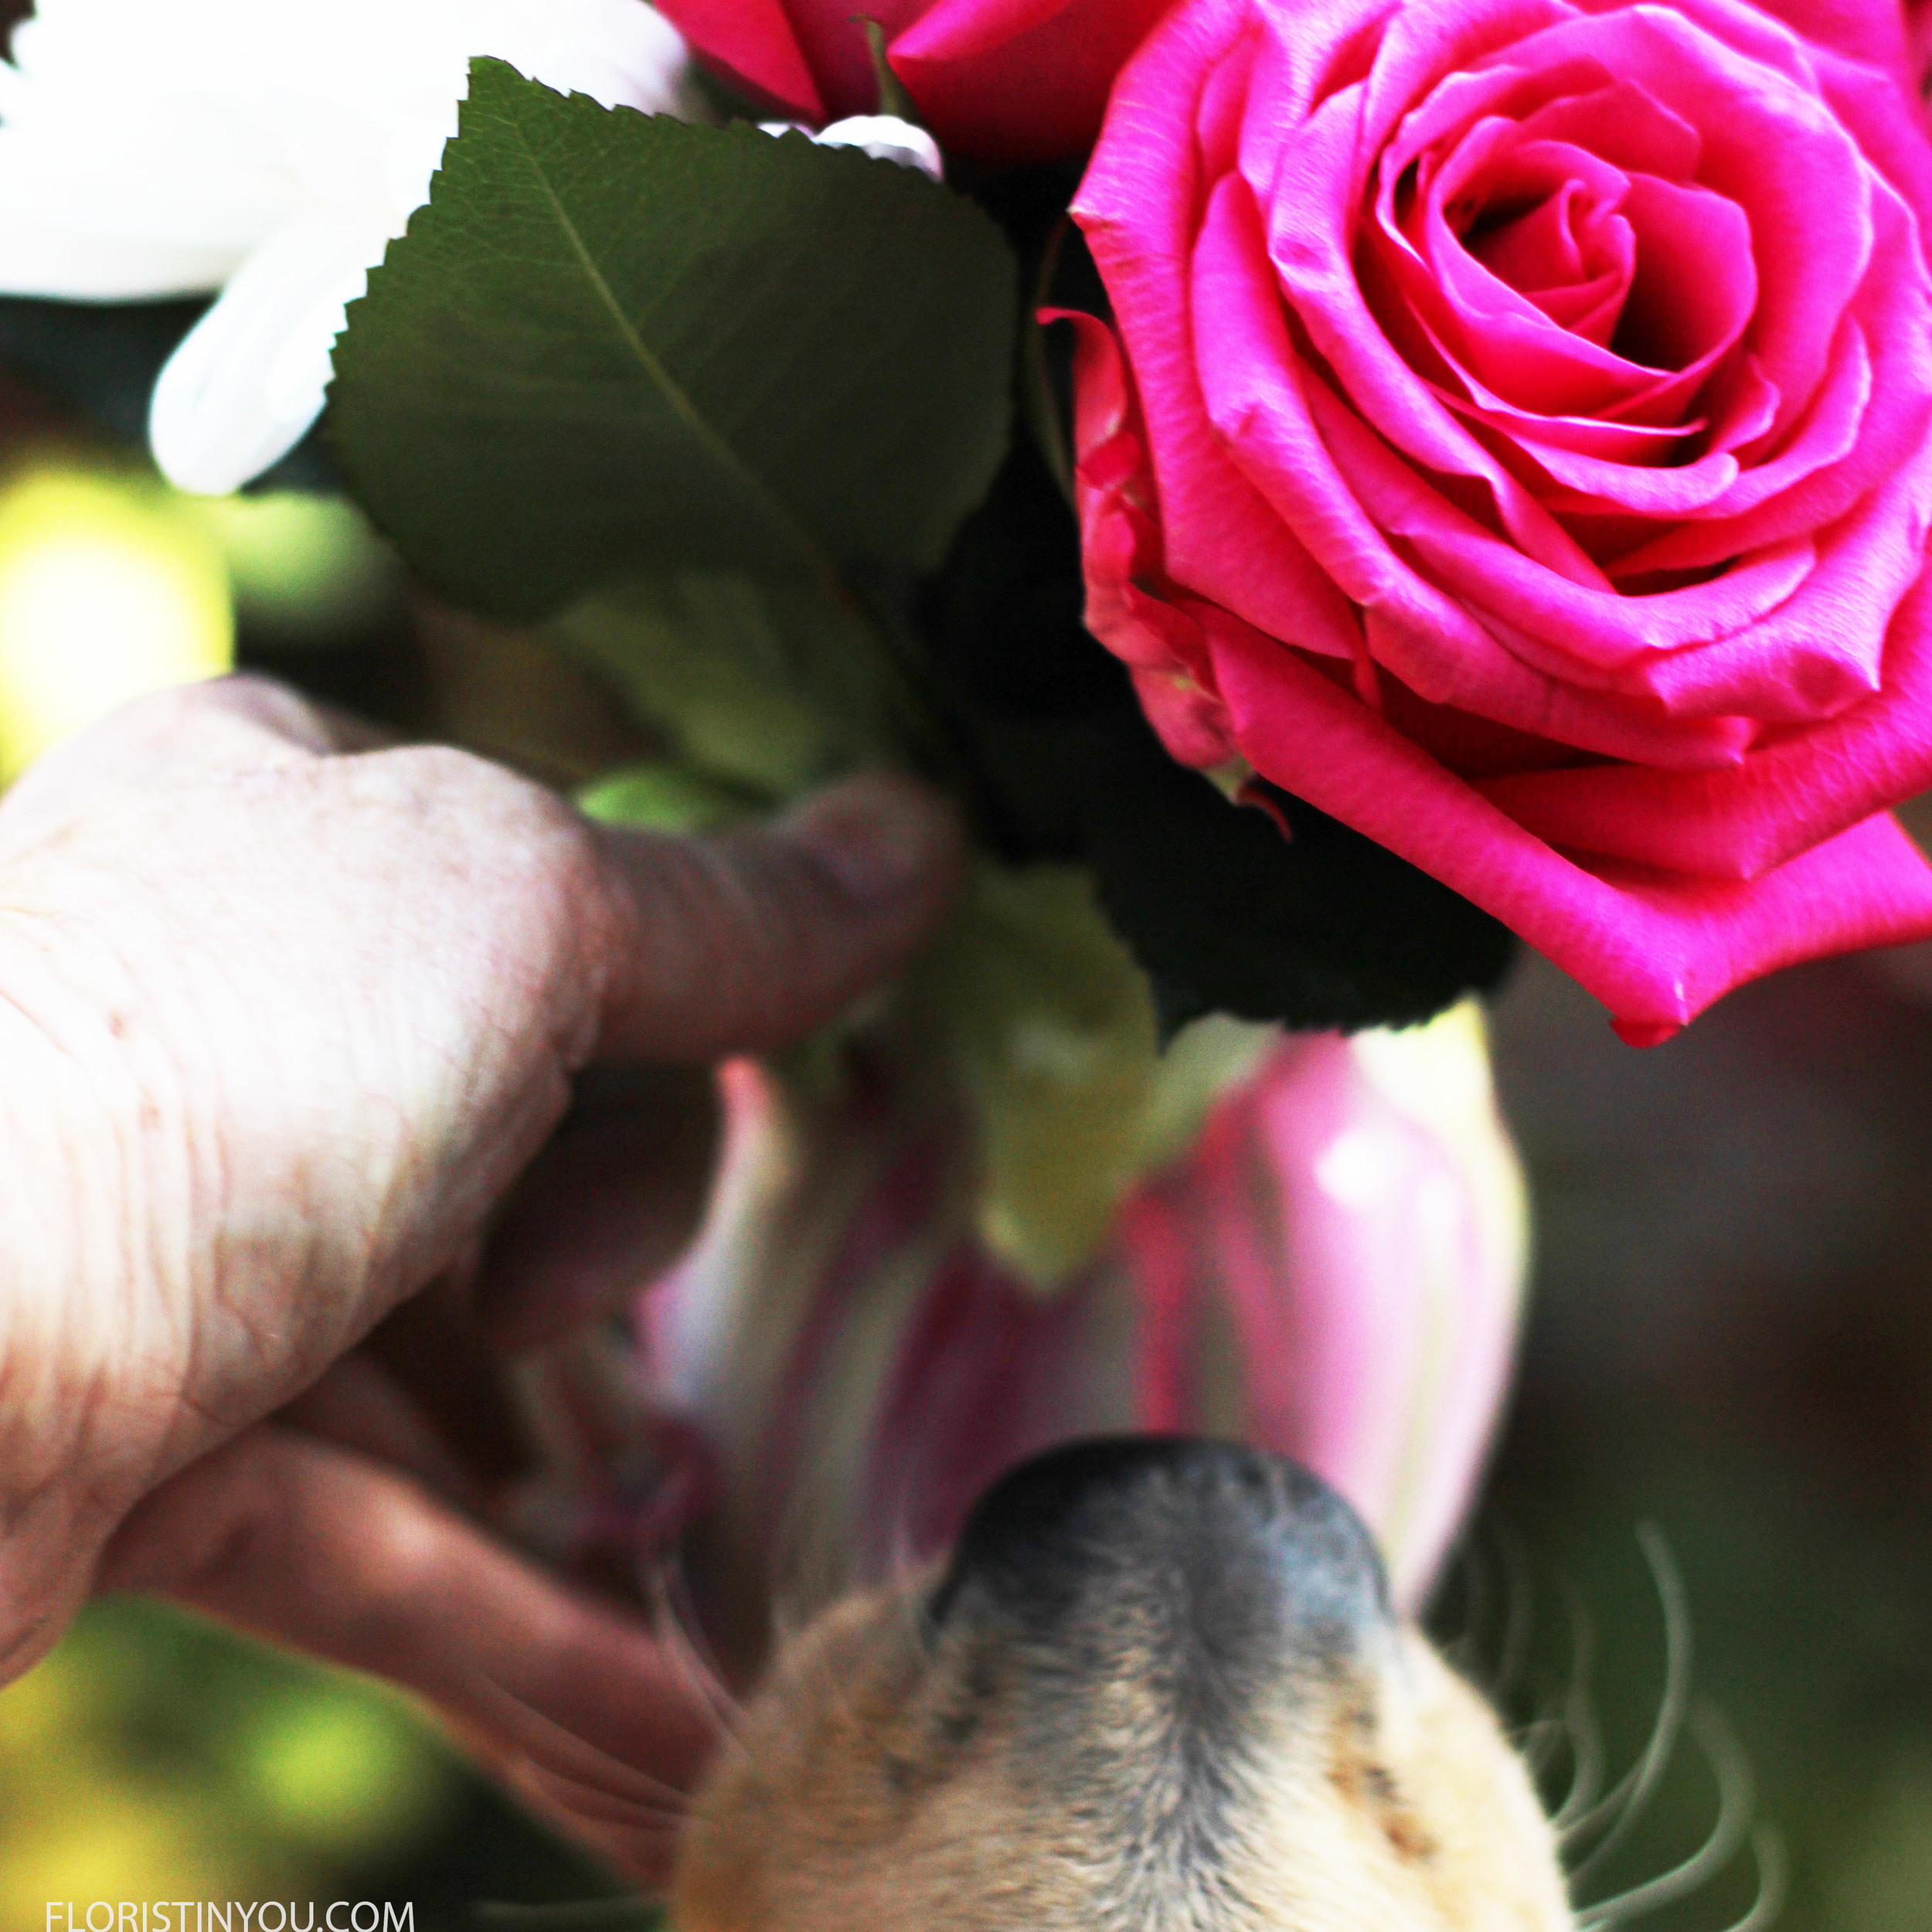 Oh no! She jumped up and bit the rose! You were supposed to smell it not bite it! Silly dog.